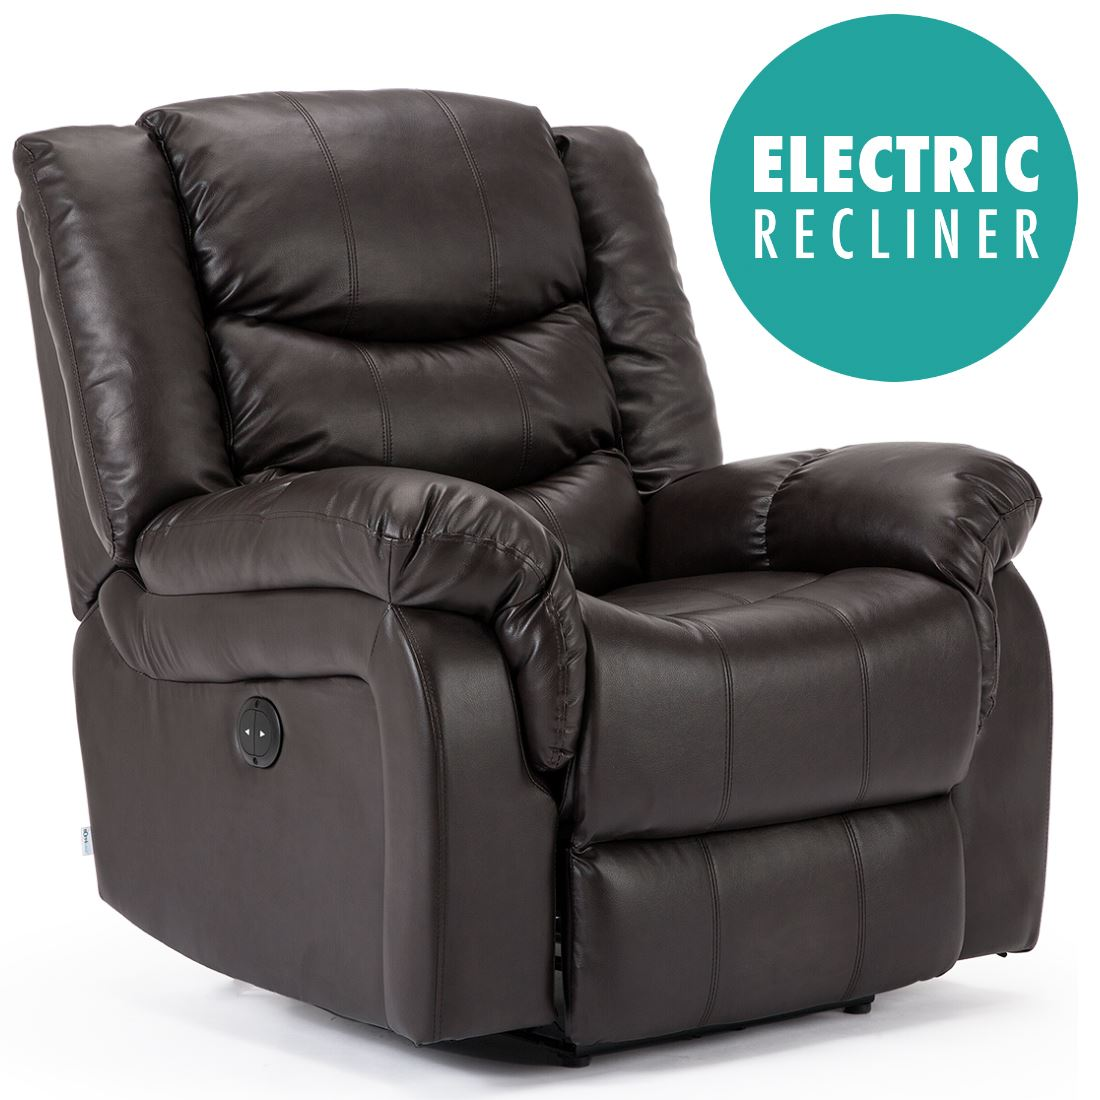 electric recliner sofa not working 3 seat slipcovers seattle leather auto armchair home